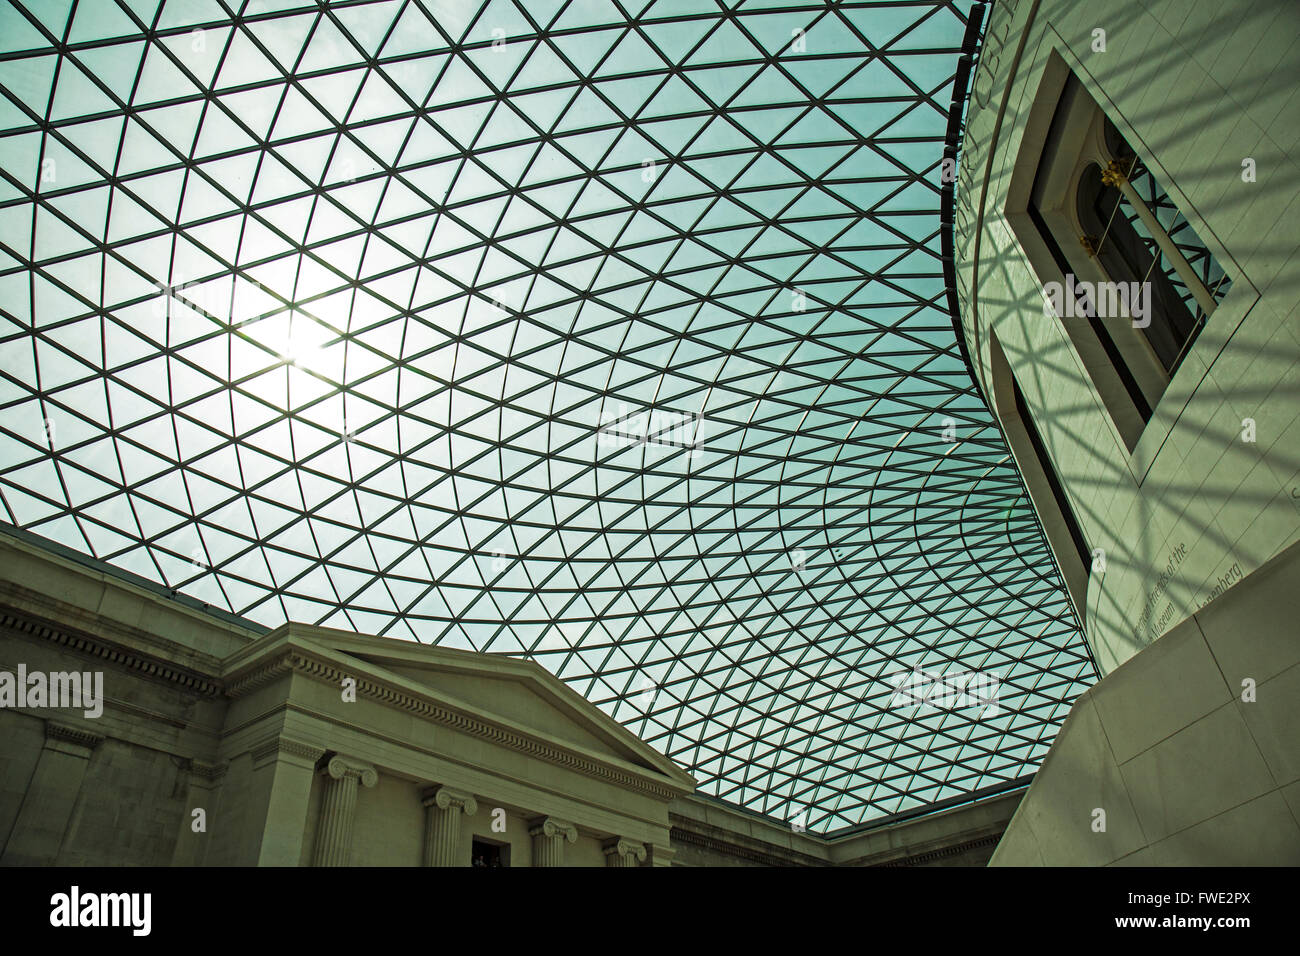 The ceiling of the Great Court in The British Museum in London. - Stock Image